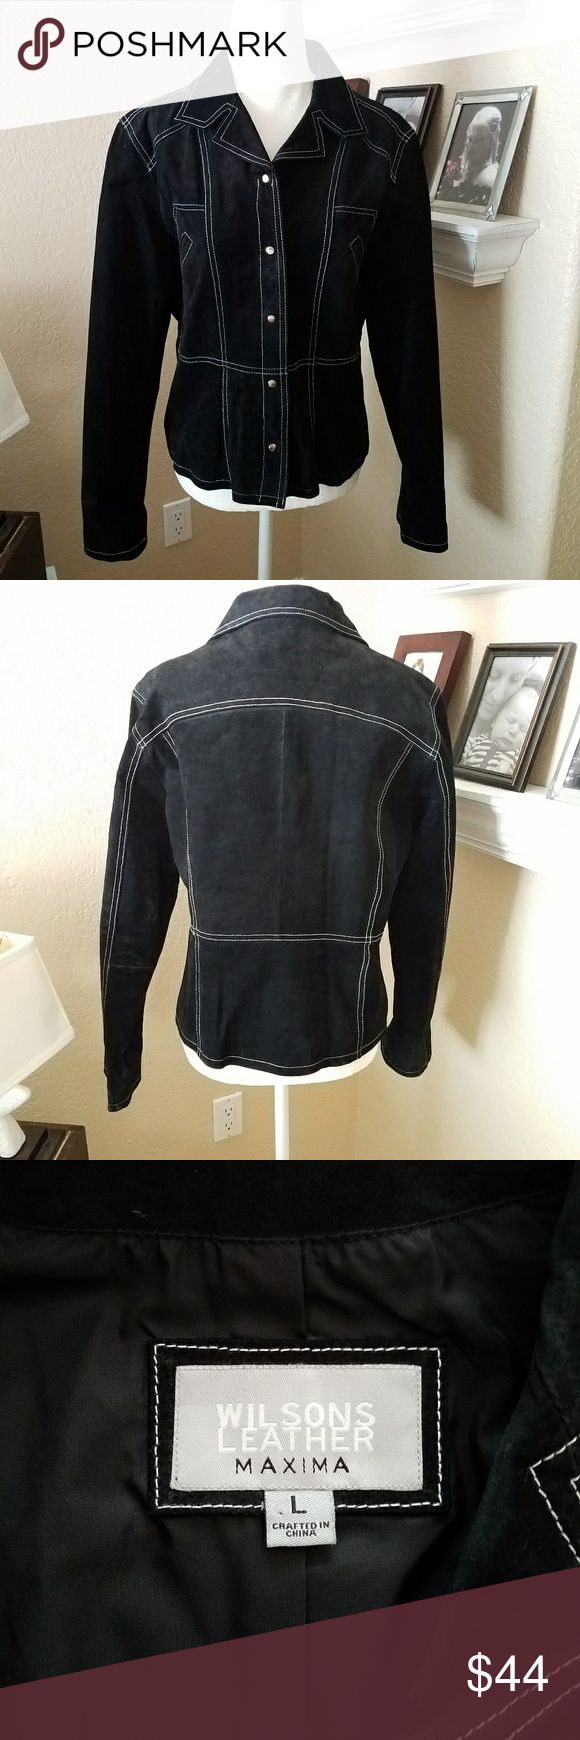 Wilson's Leather Black Suede Jacket Striking! This suede